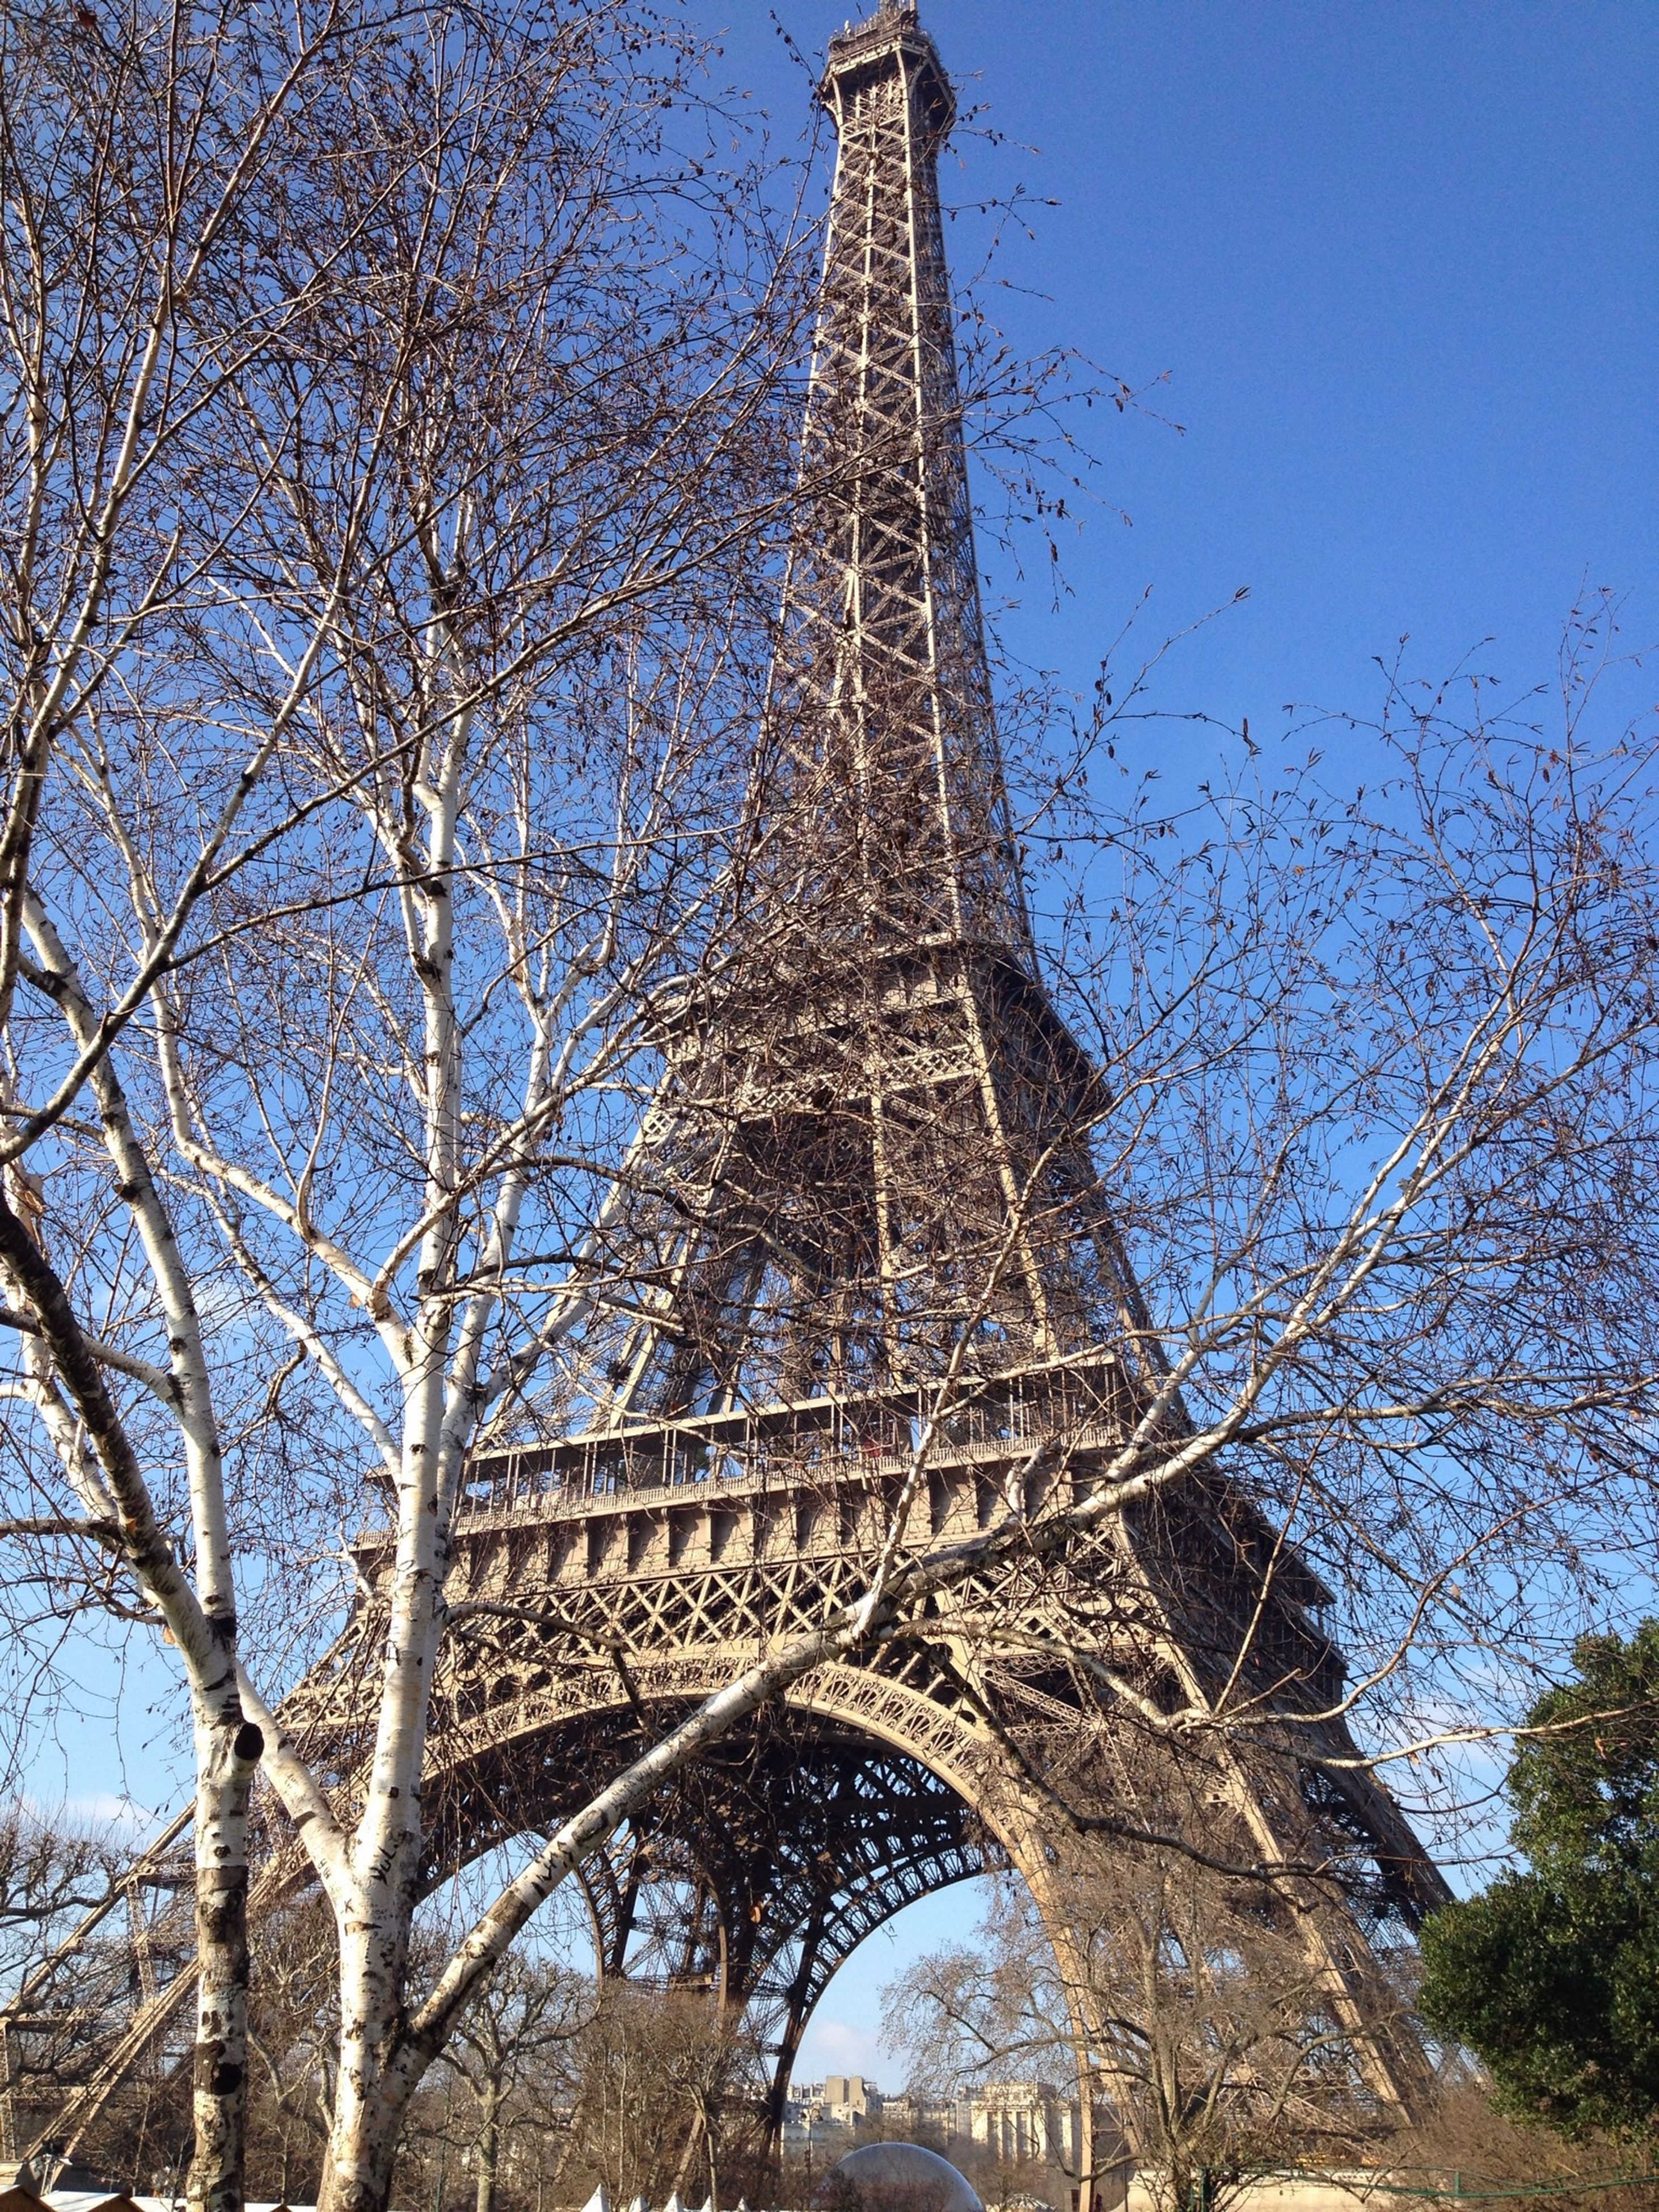 architecture, built structure, low angle view, famous place, eiffel tower, tree, international landmark, tower, travel destinations, history, tourism, culture, capital cities, travel, building exterior, tall - high, bare tree, sky, architectural feature, religion